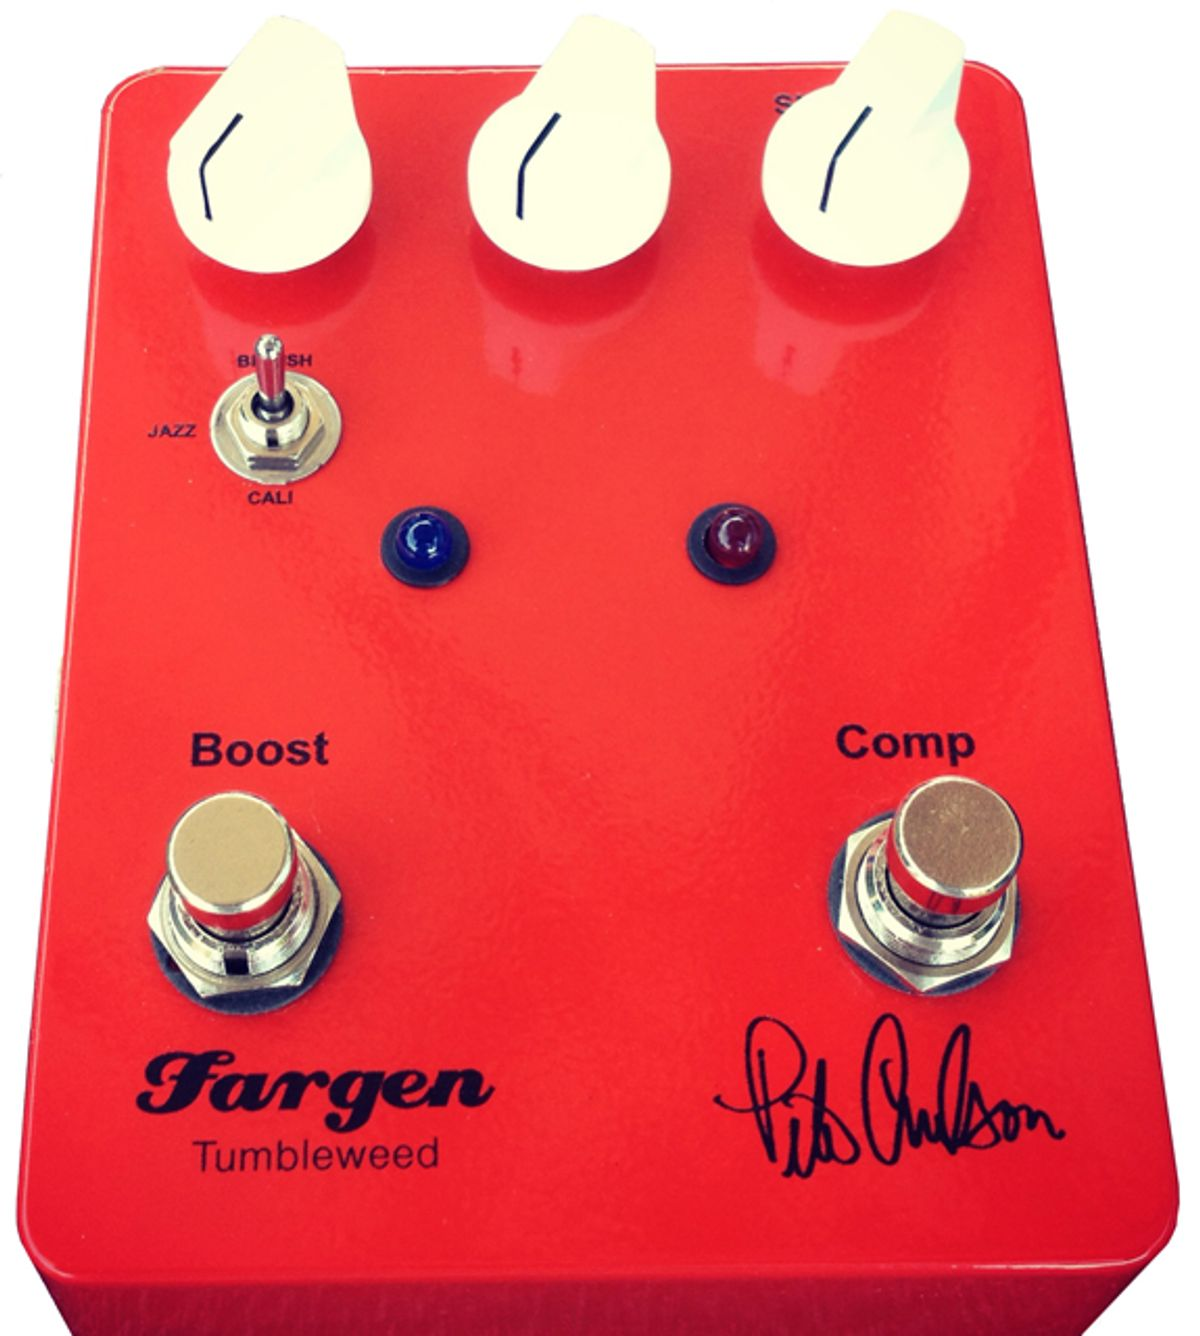 Fargen Releases the Pete Anderson Tumbleweed Pedal